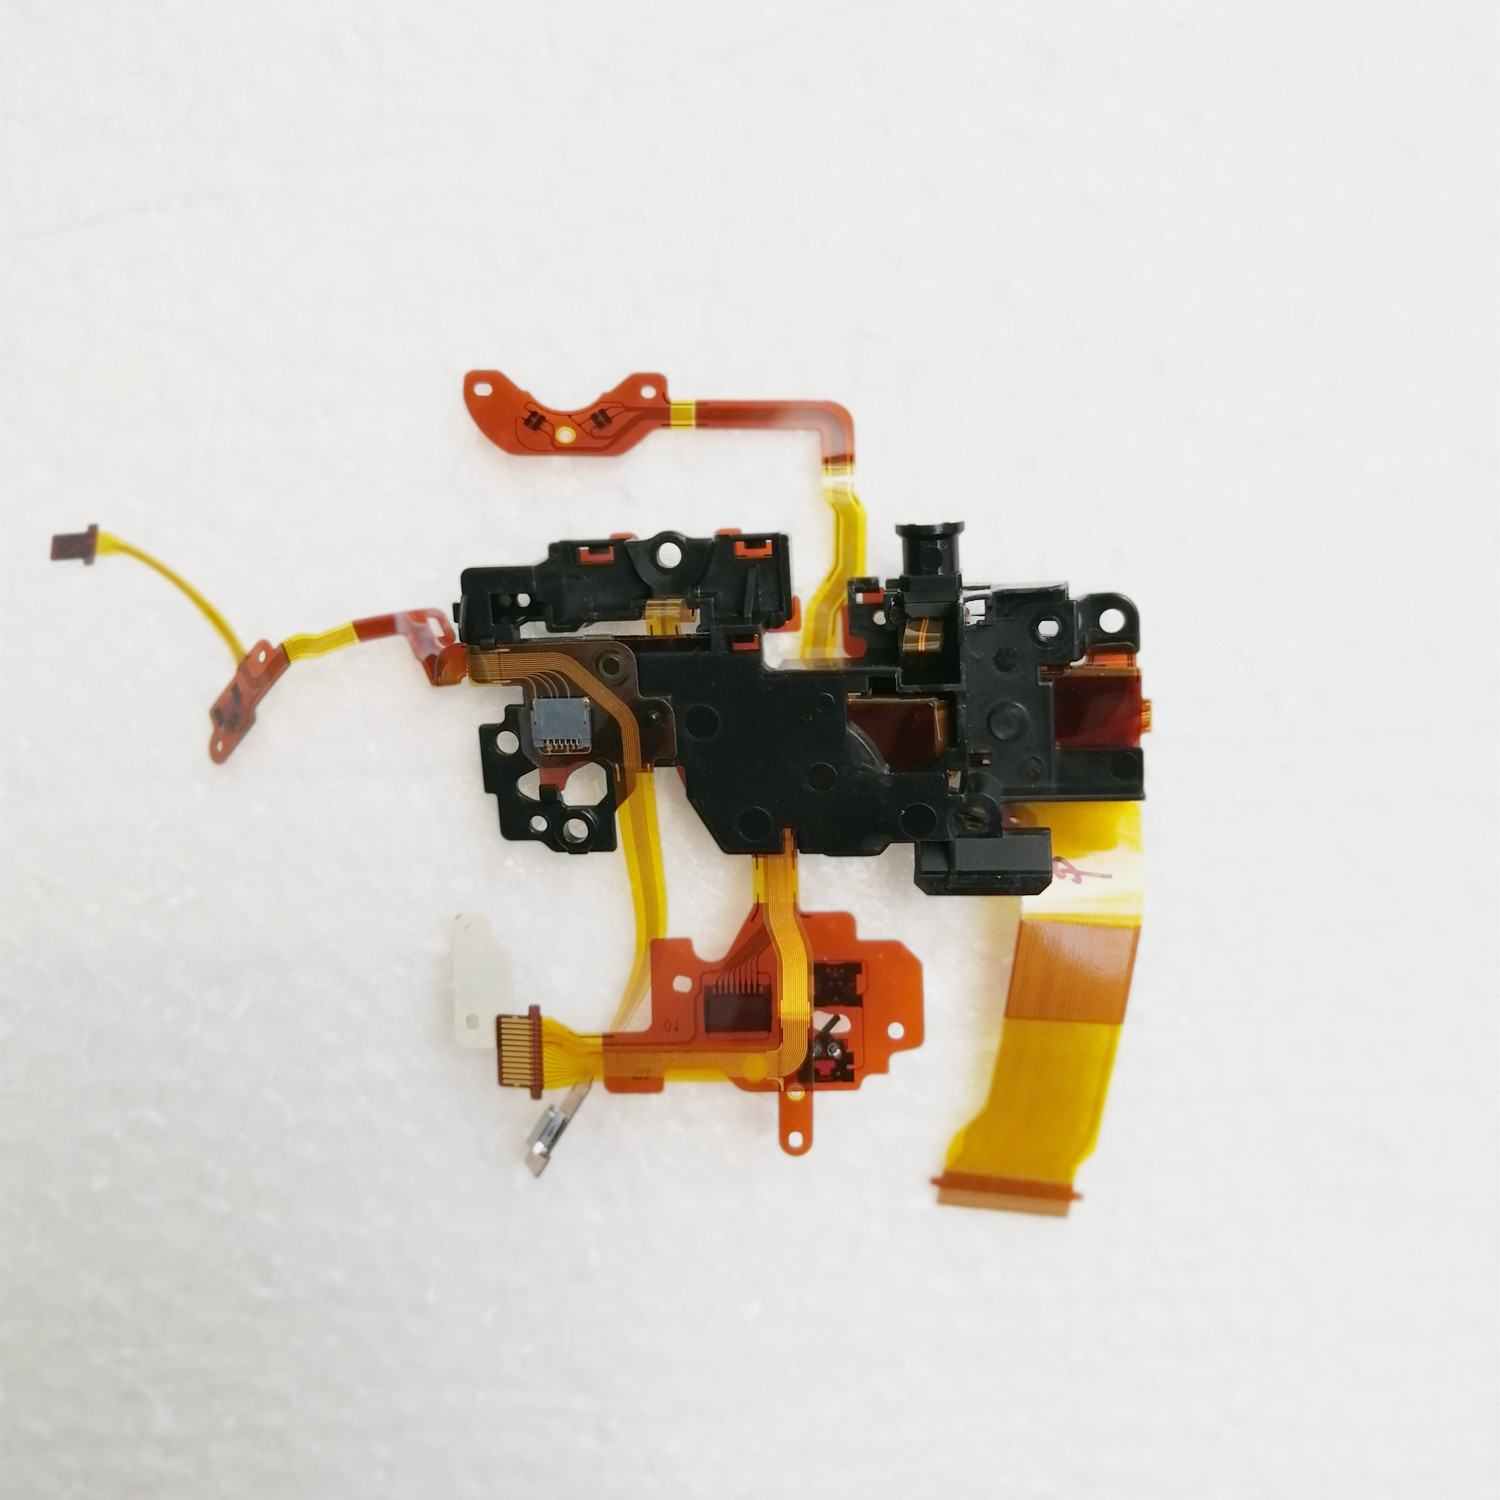 Top Cover Shutter Flex Cable Replacement for Sony Alpha A7R II ILCE-7RM2